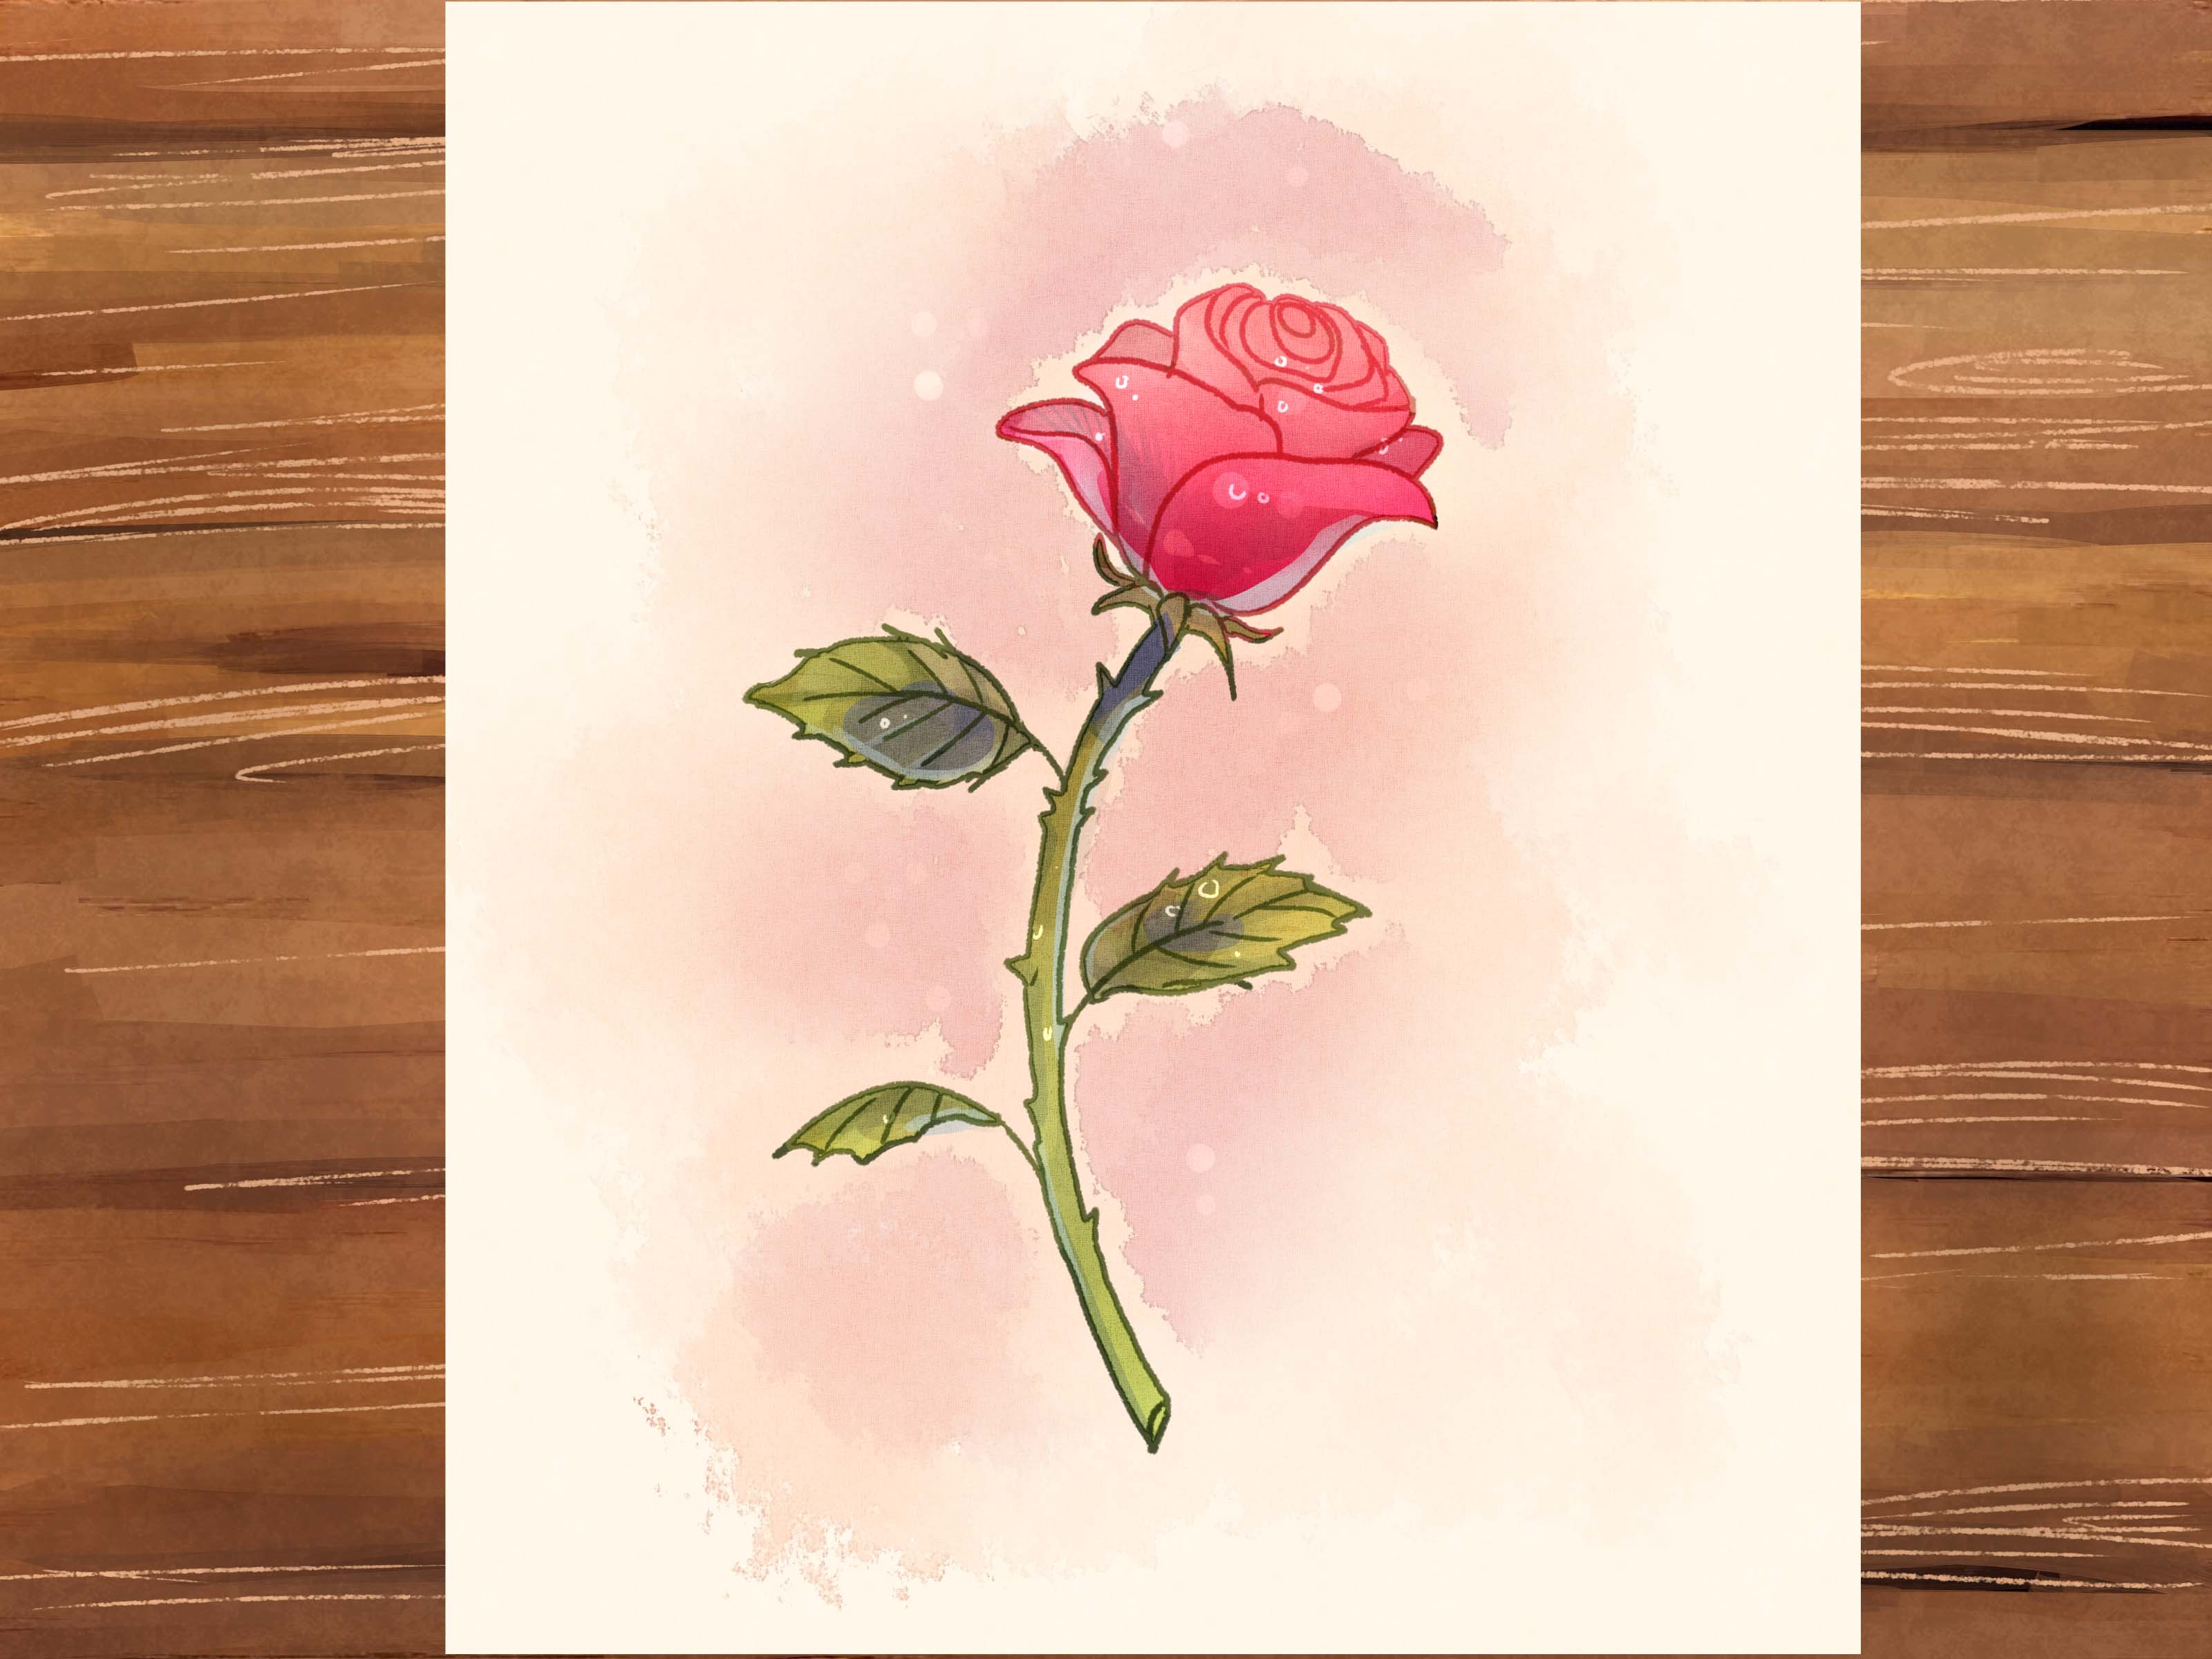 Drawn red rose rosa  Easy Rose Draw a